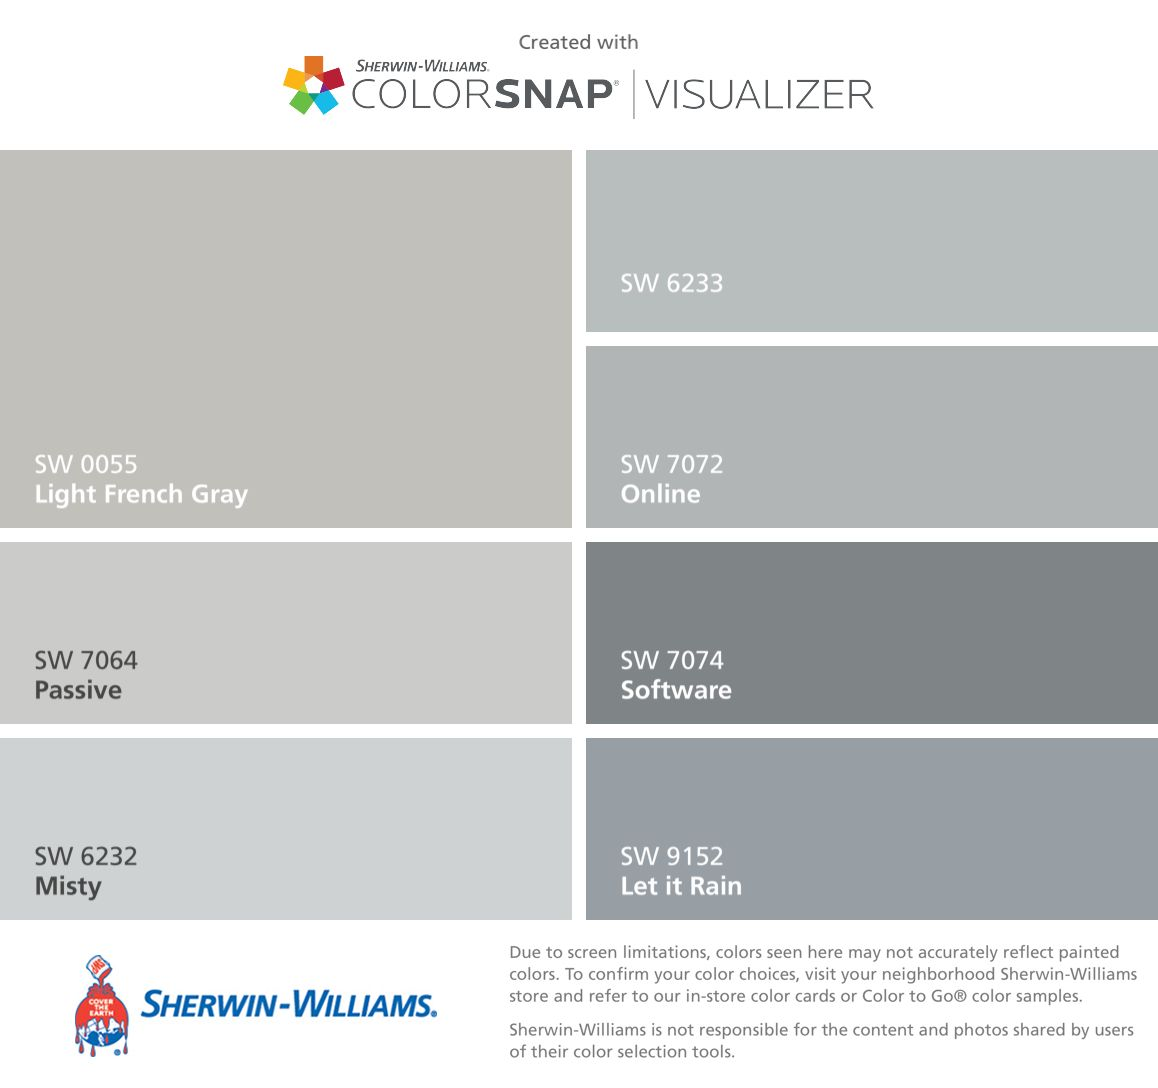 Actual colors i will use to paint the house light french gray sw 0055 passive sw 7064 - Light gray exterior paint colors image ...